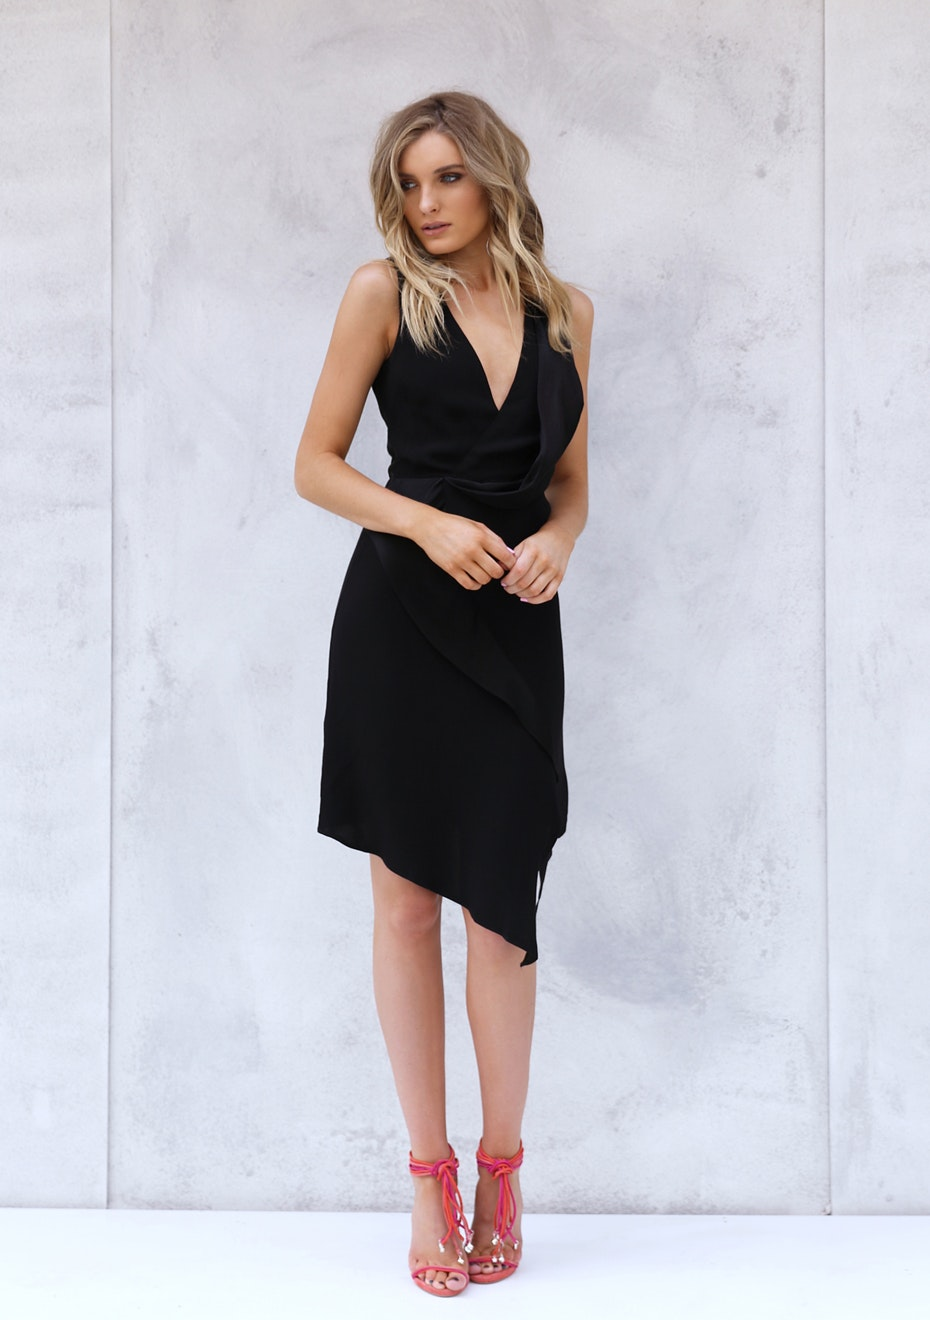 Madison - JOSIE DRESS - BLACK